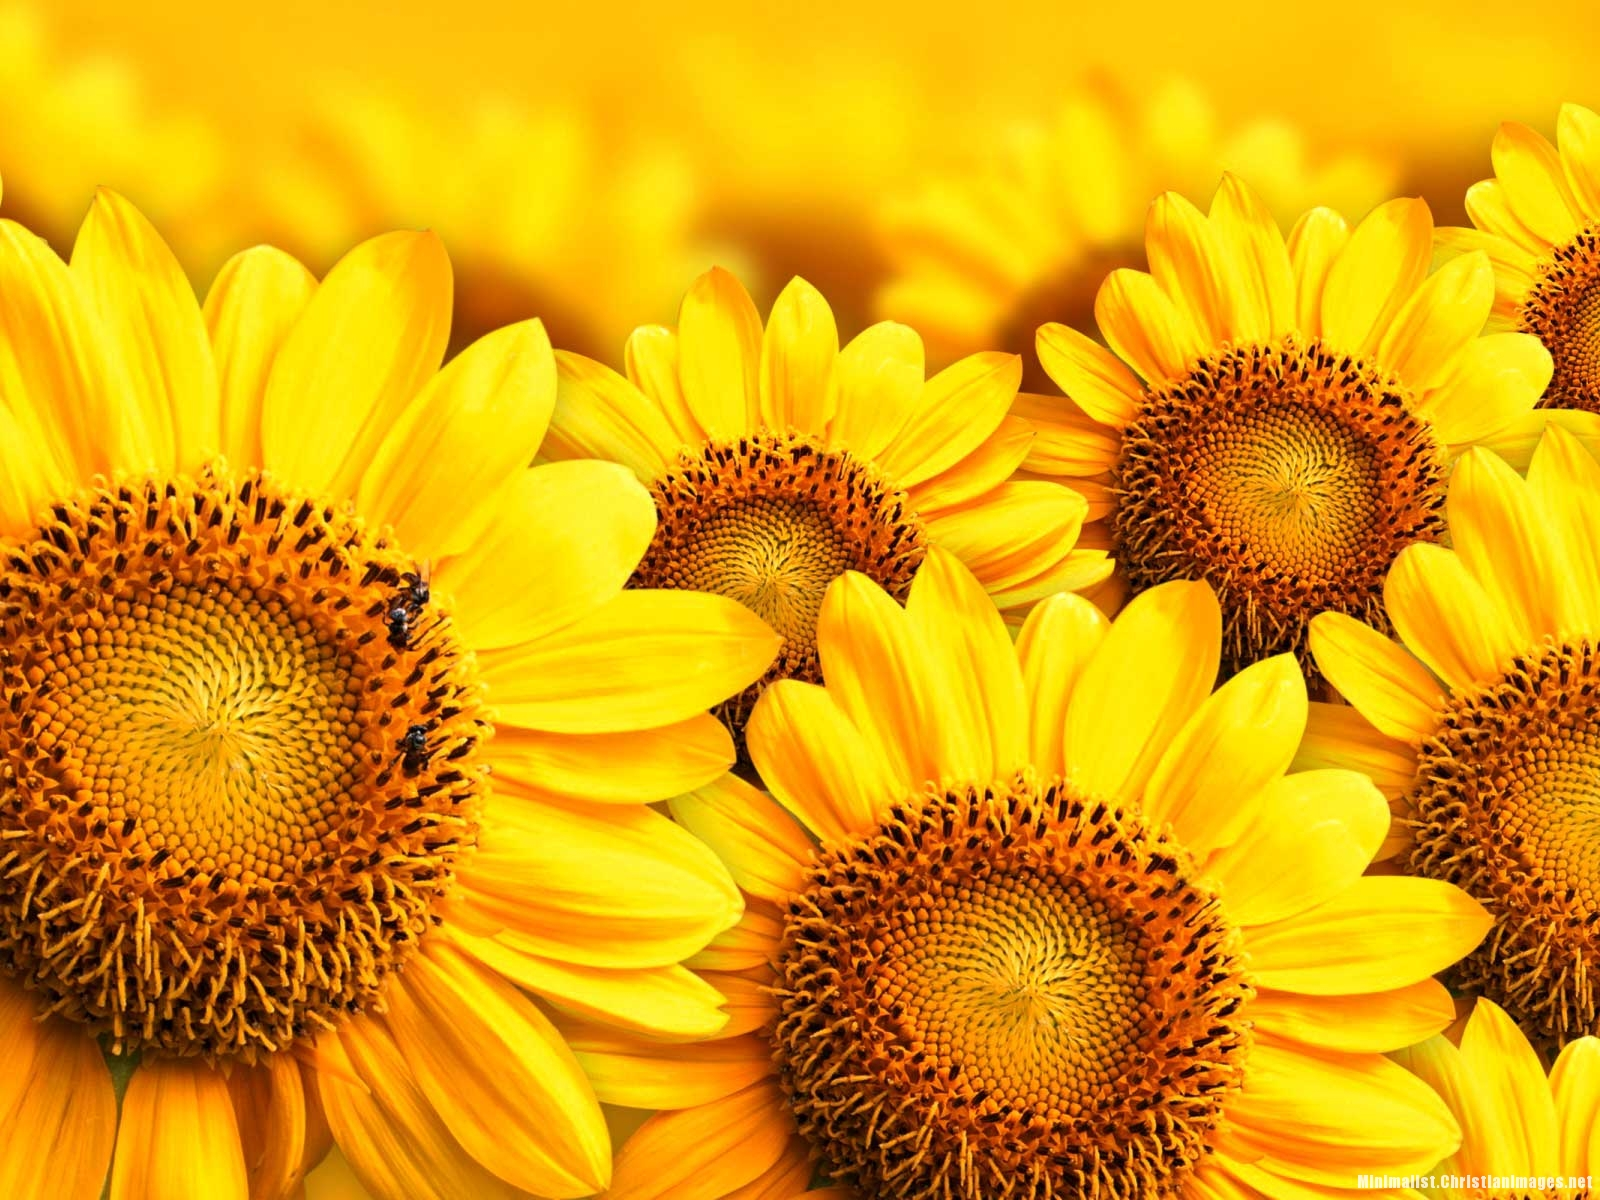 Super Awesome Sunflower Powerpoint Background – Minimalist Backgrounds